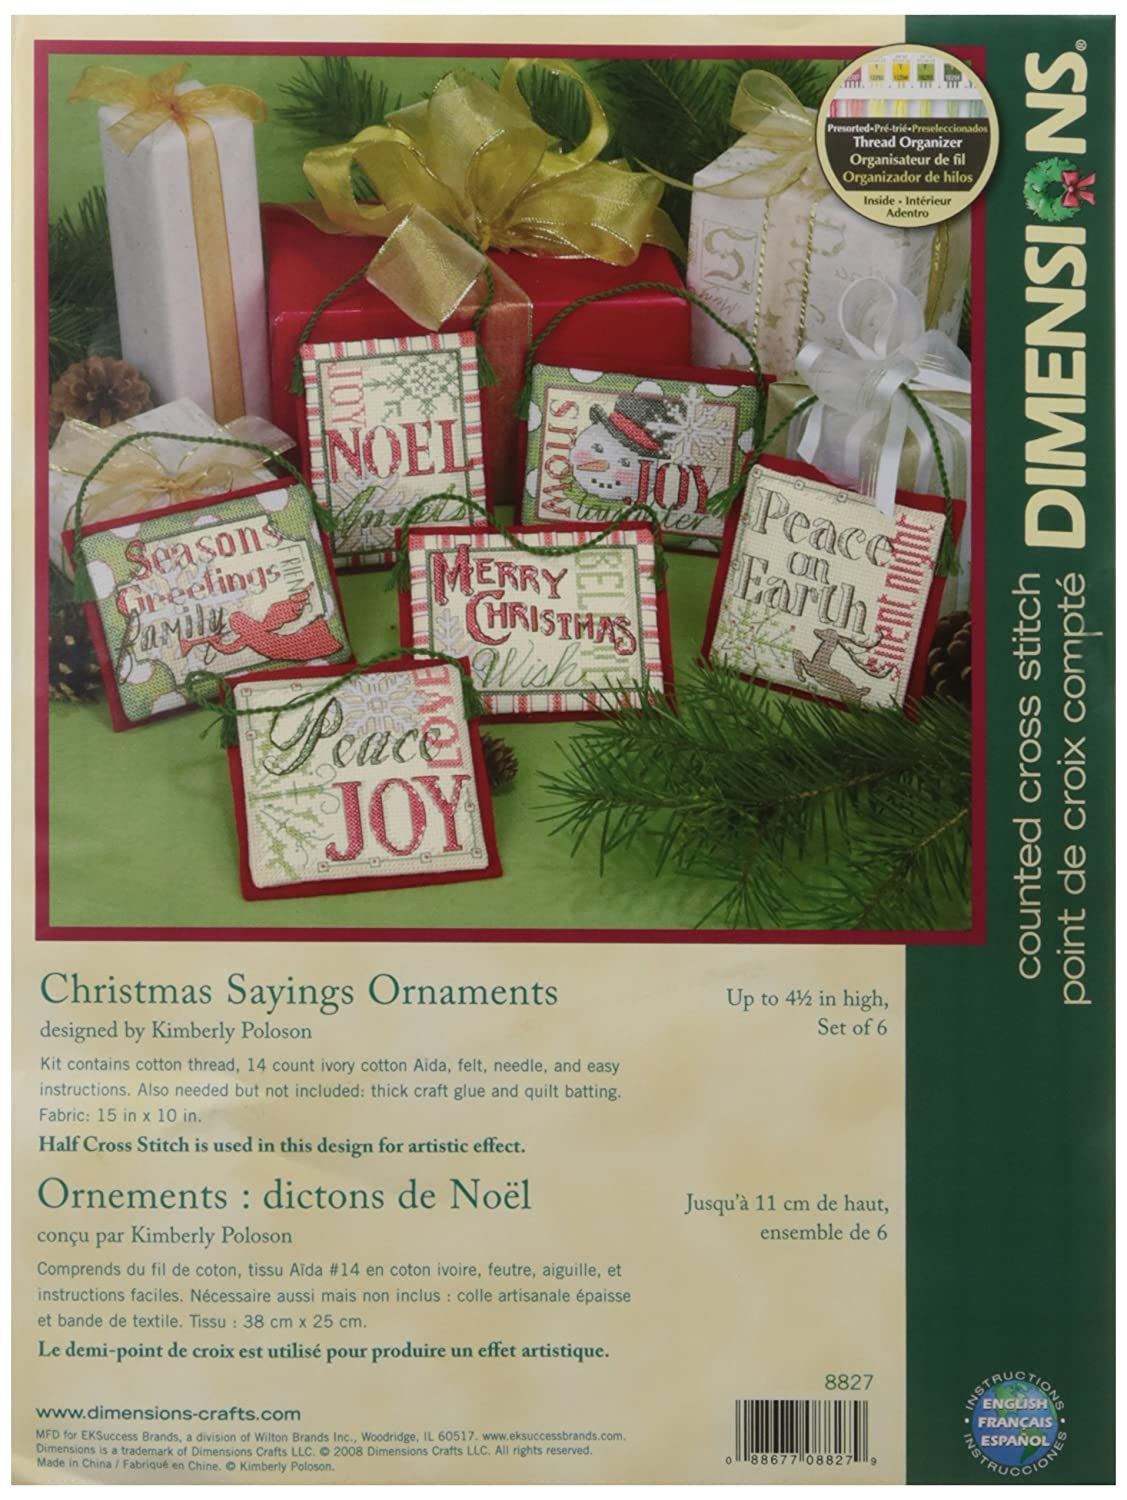 Dimensions Needlecrafts Counted Cross Stitch, Christmas Sayings Ornaments EKS 08827